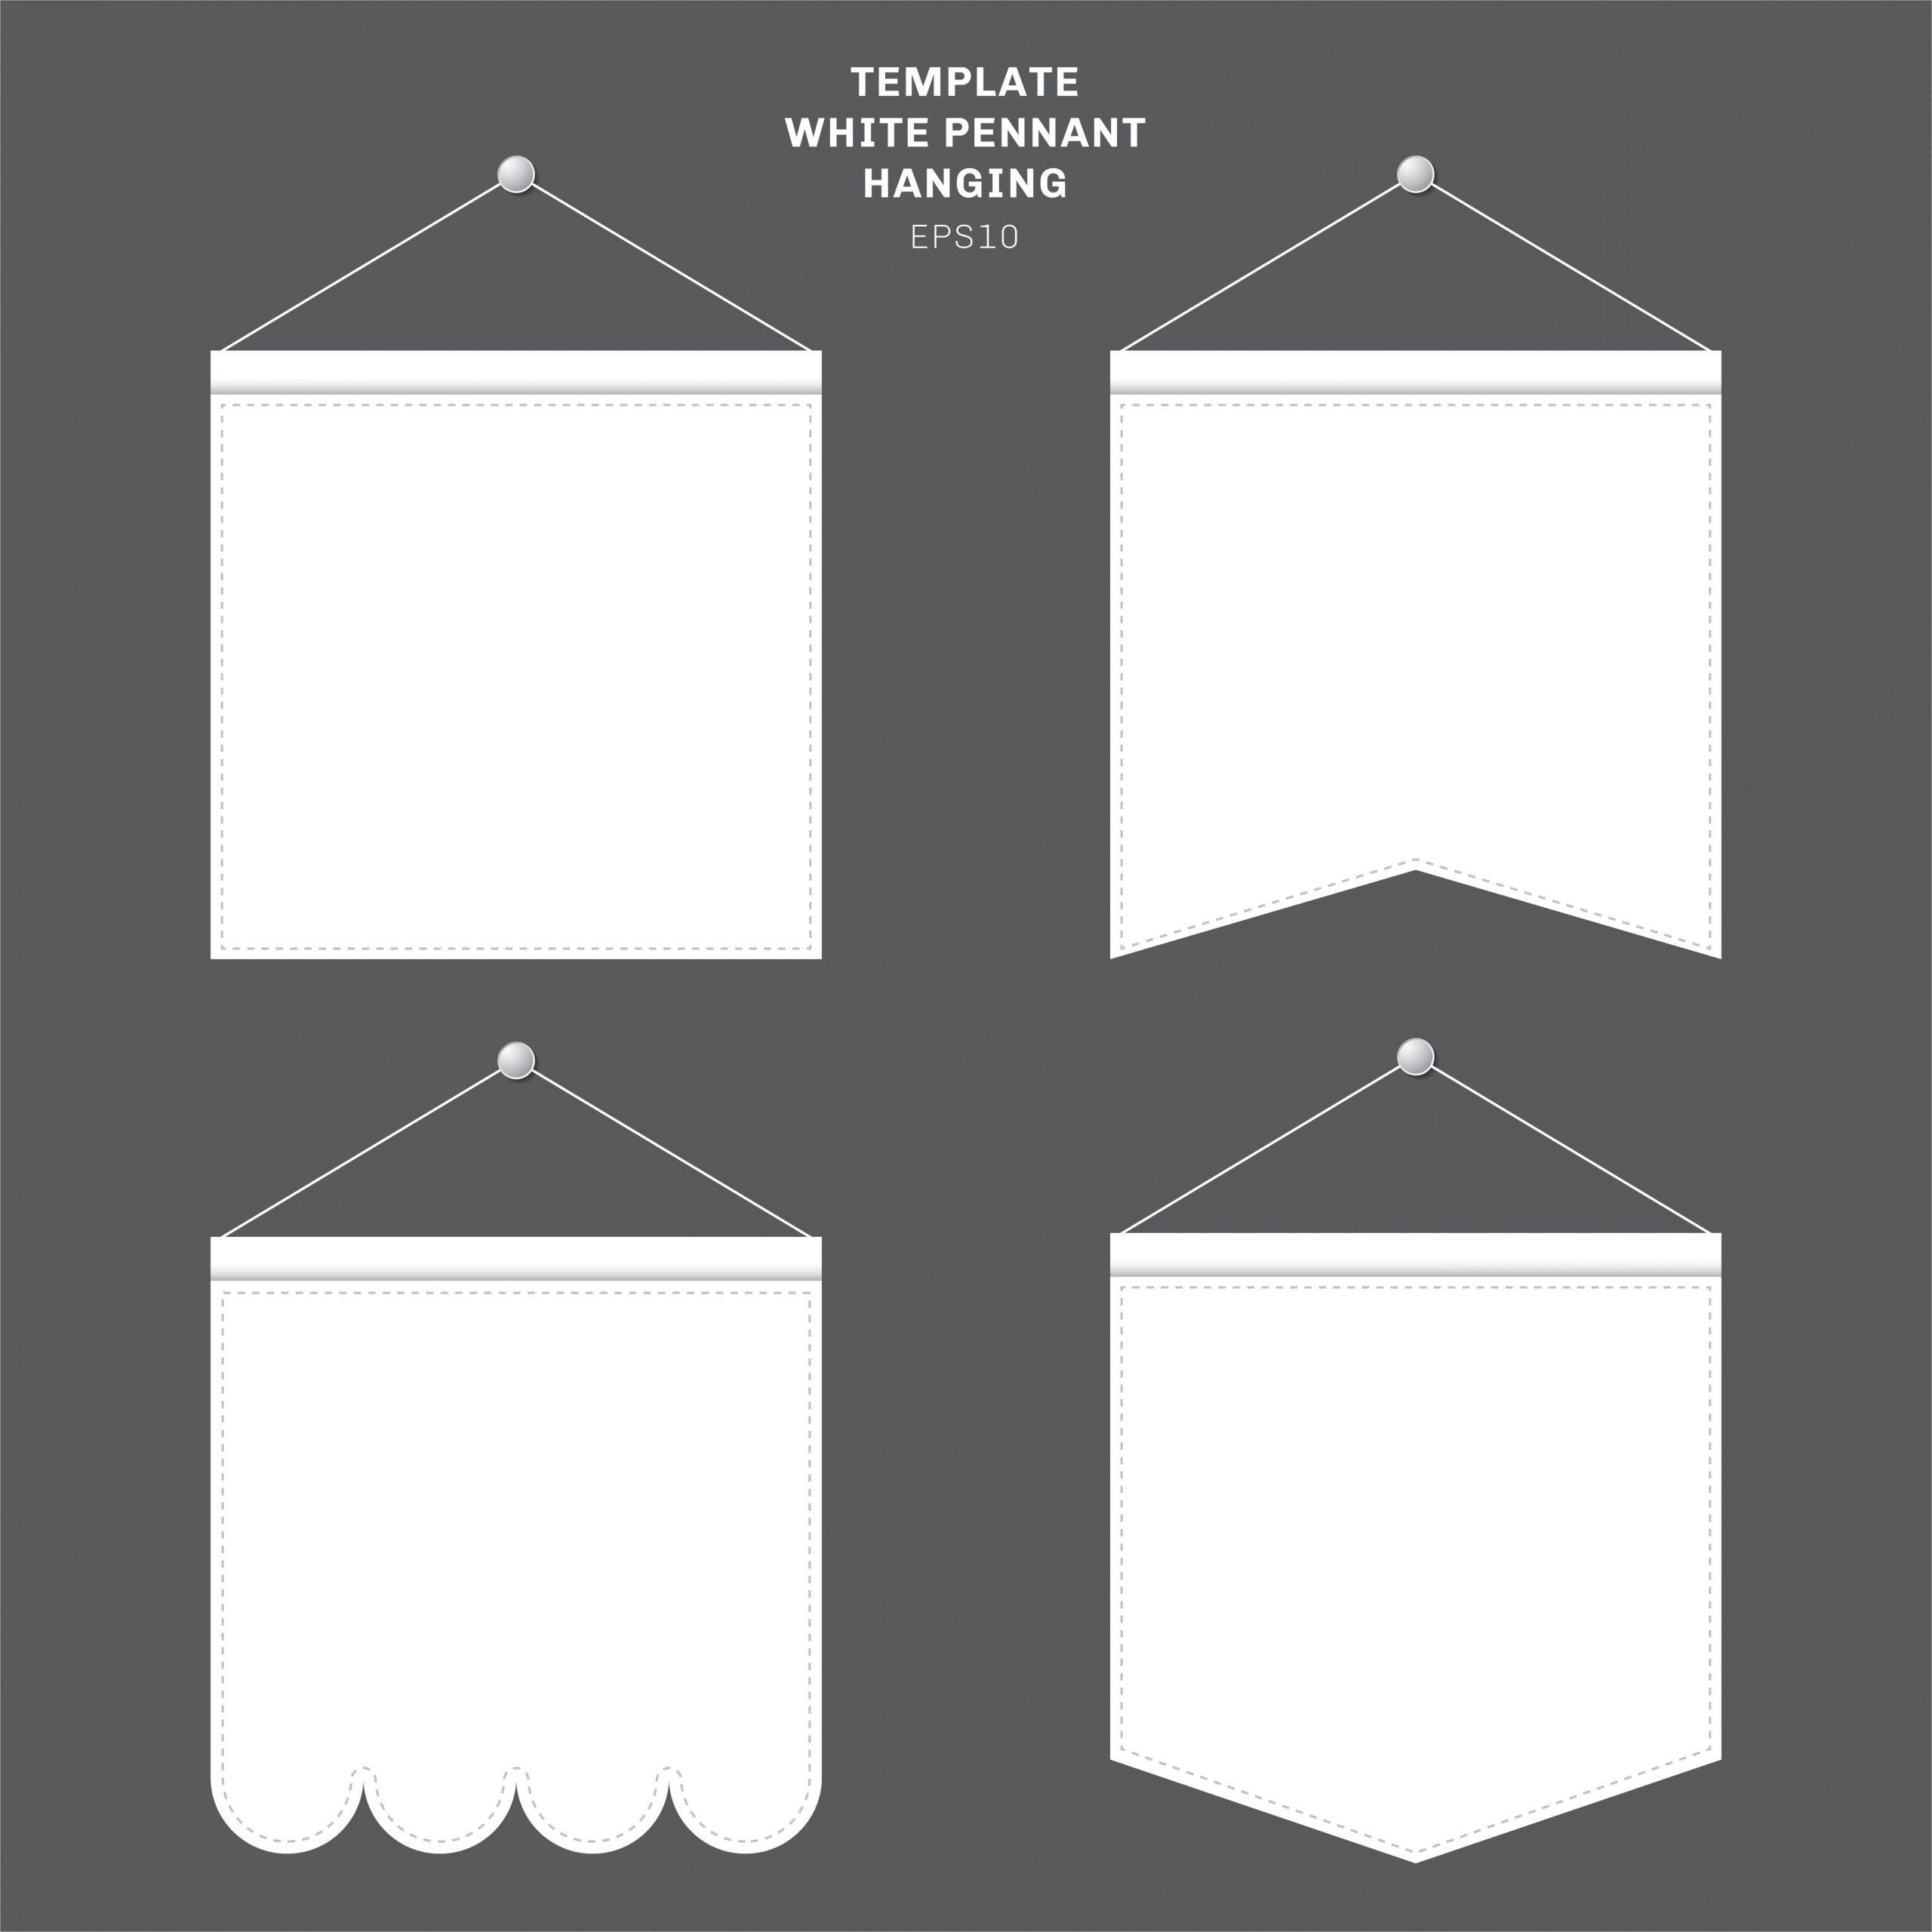 set of template white pennant hanging on a wall advertising canvas outdoor banners mock up